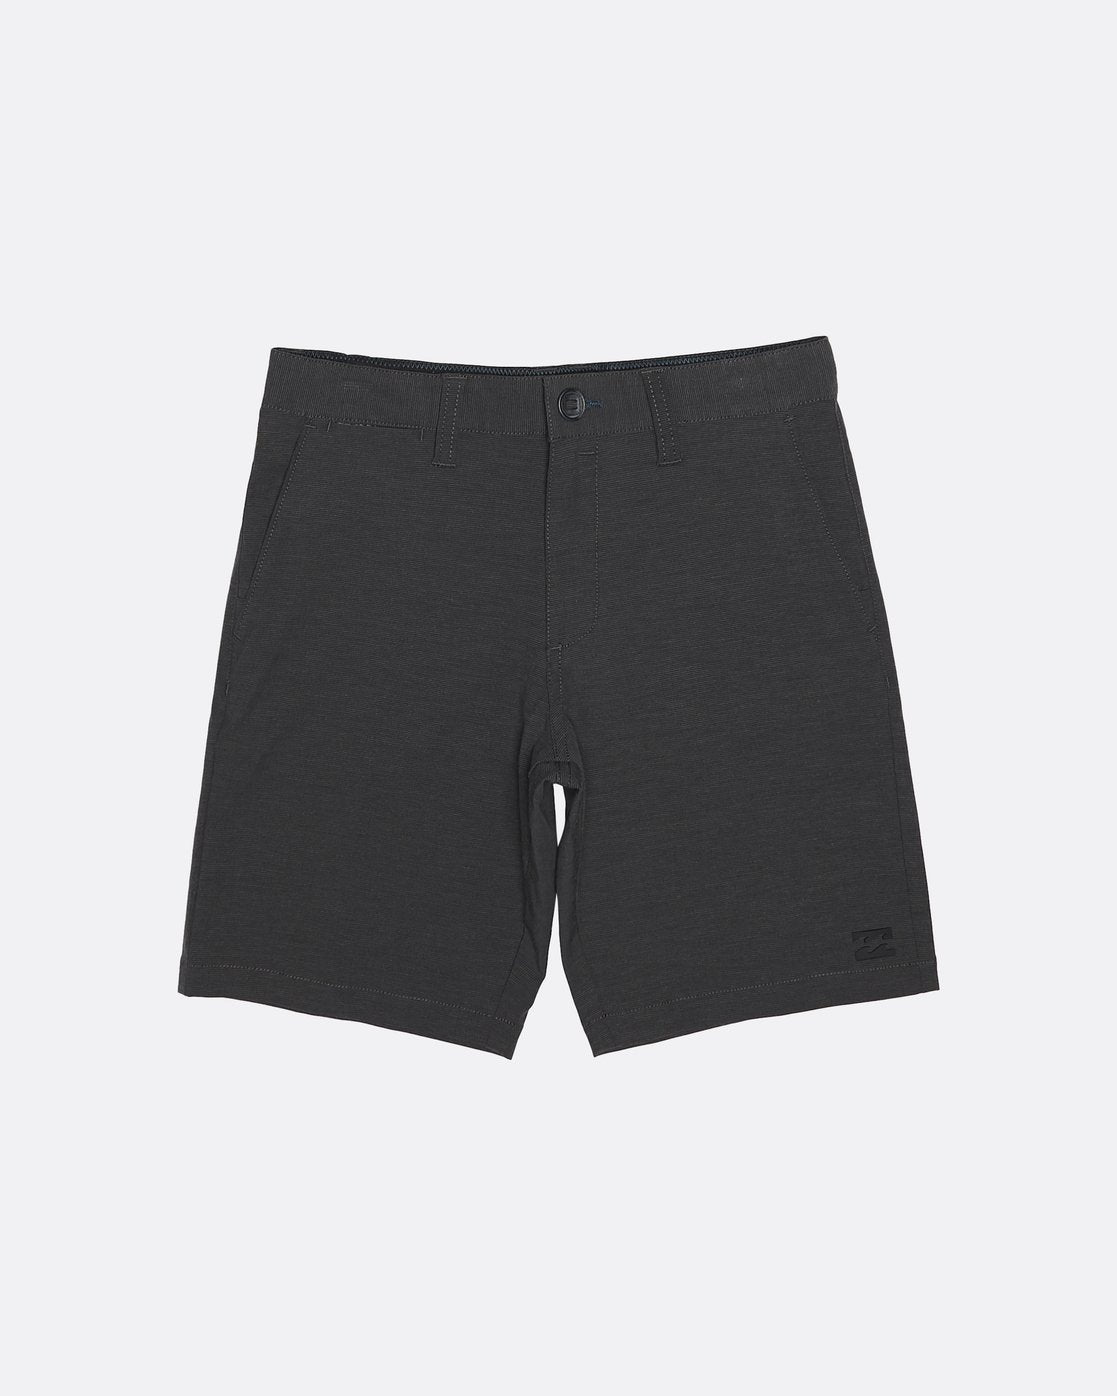 Billabong Crossfire Boys Submersible Shorts